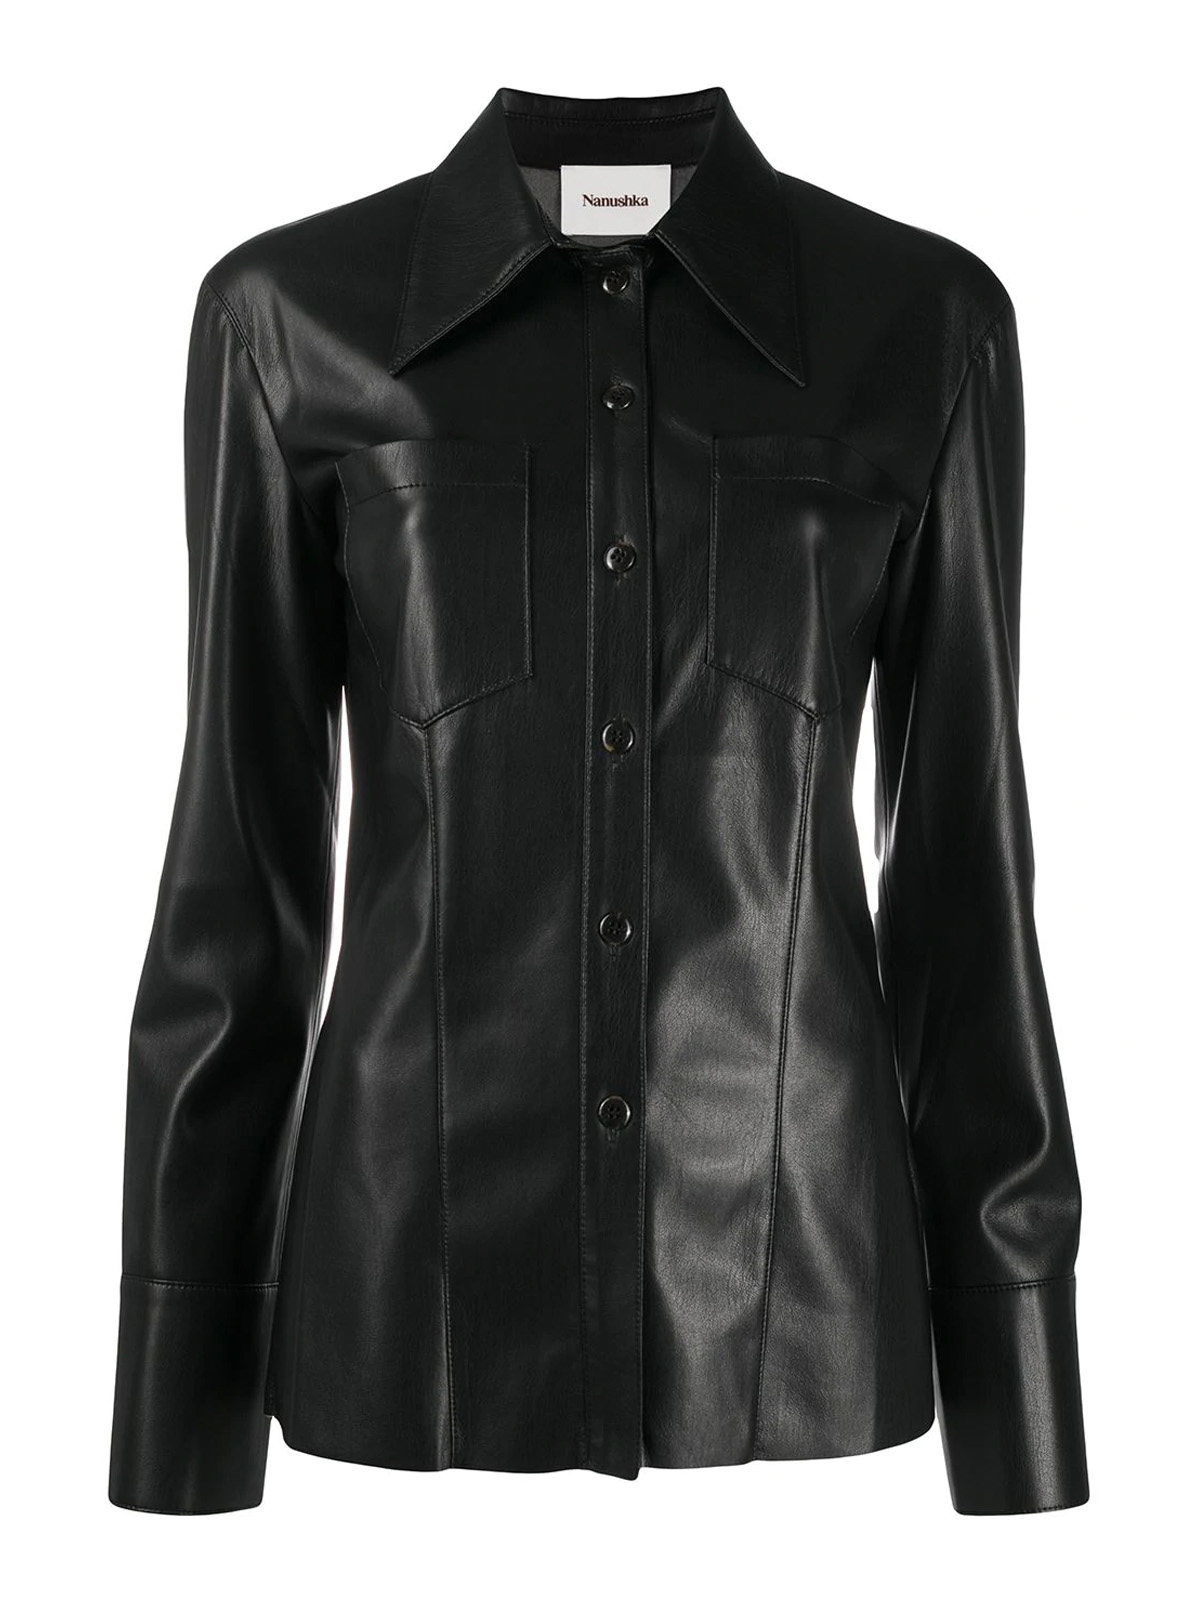 Nanushka Leathers VEGAN LEATHER SHIRT